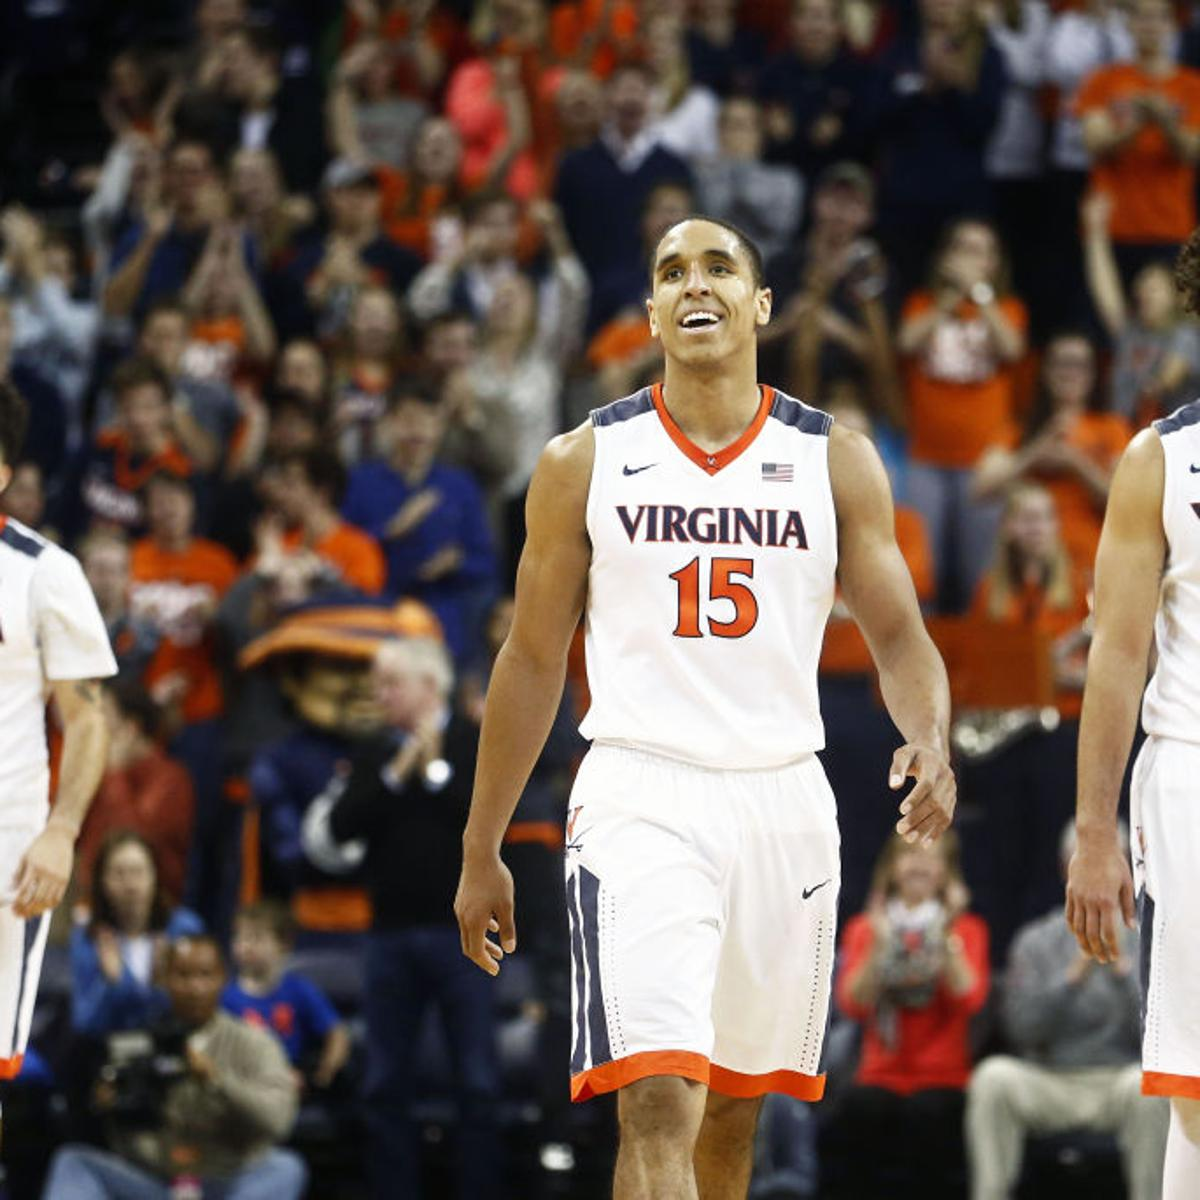 newest b545f 4d111 Brogdon became the embodiment of UVa basketball | cavalier ...